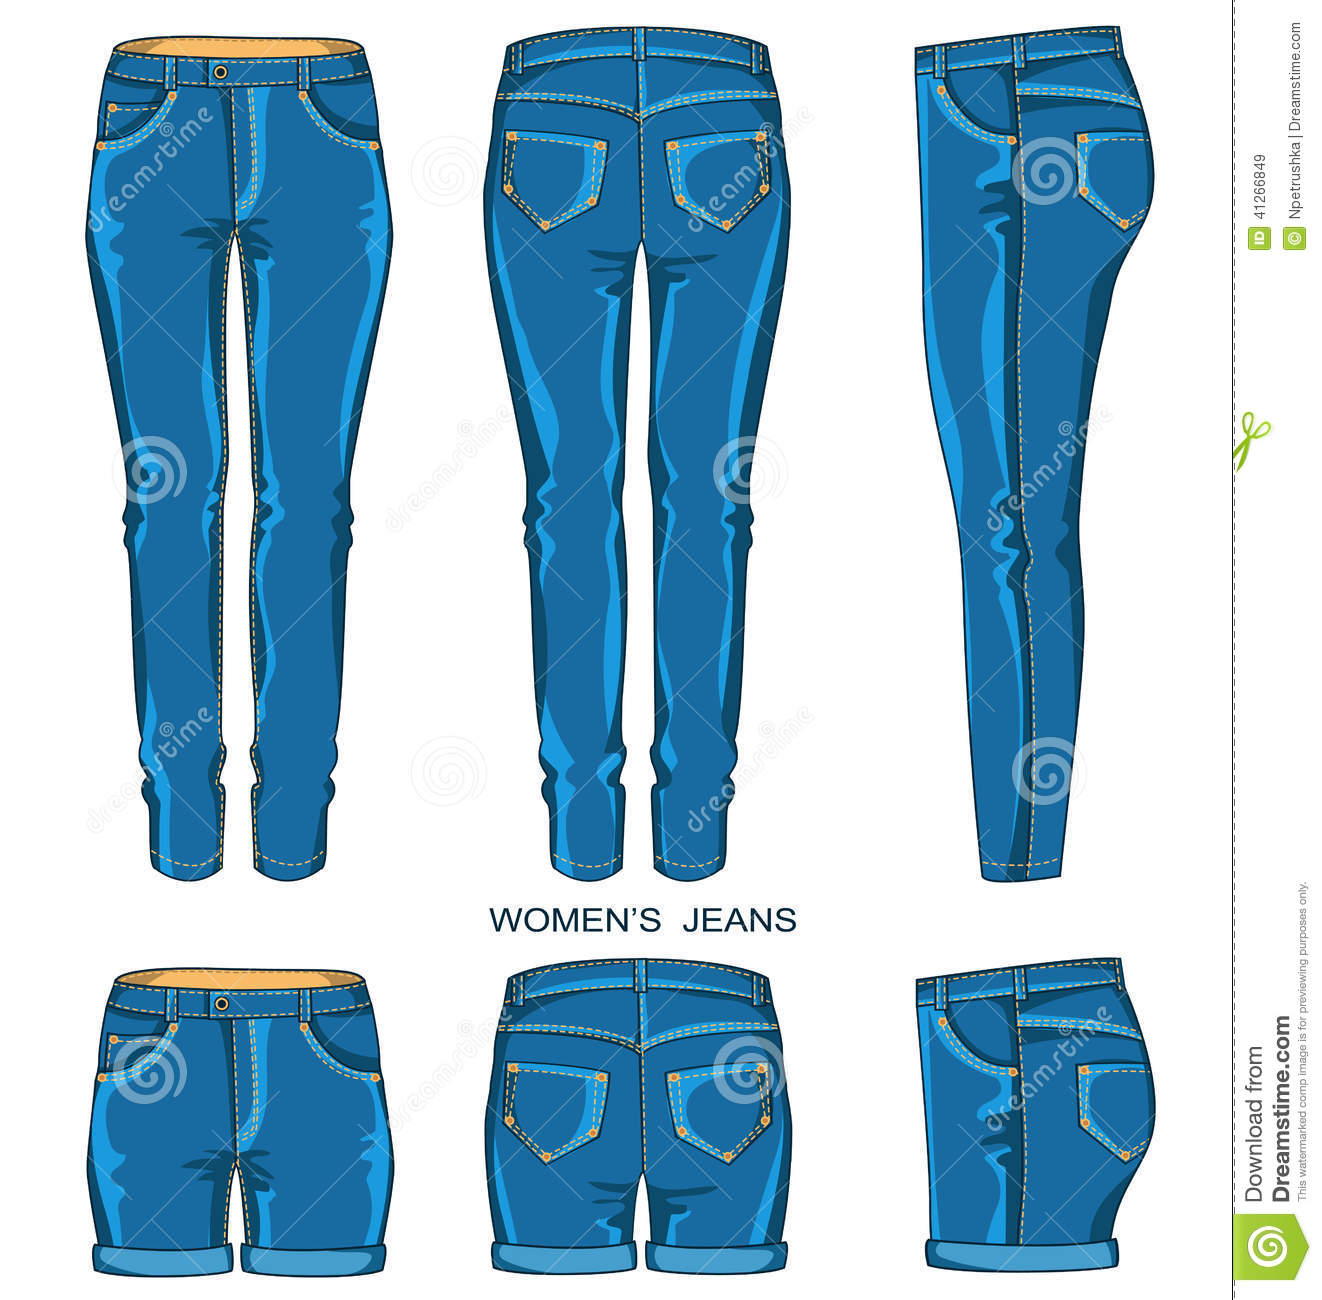 Dress Pants Clipart Clipground